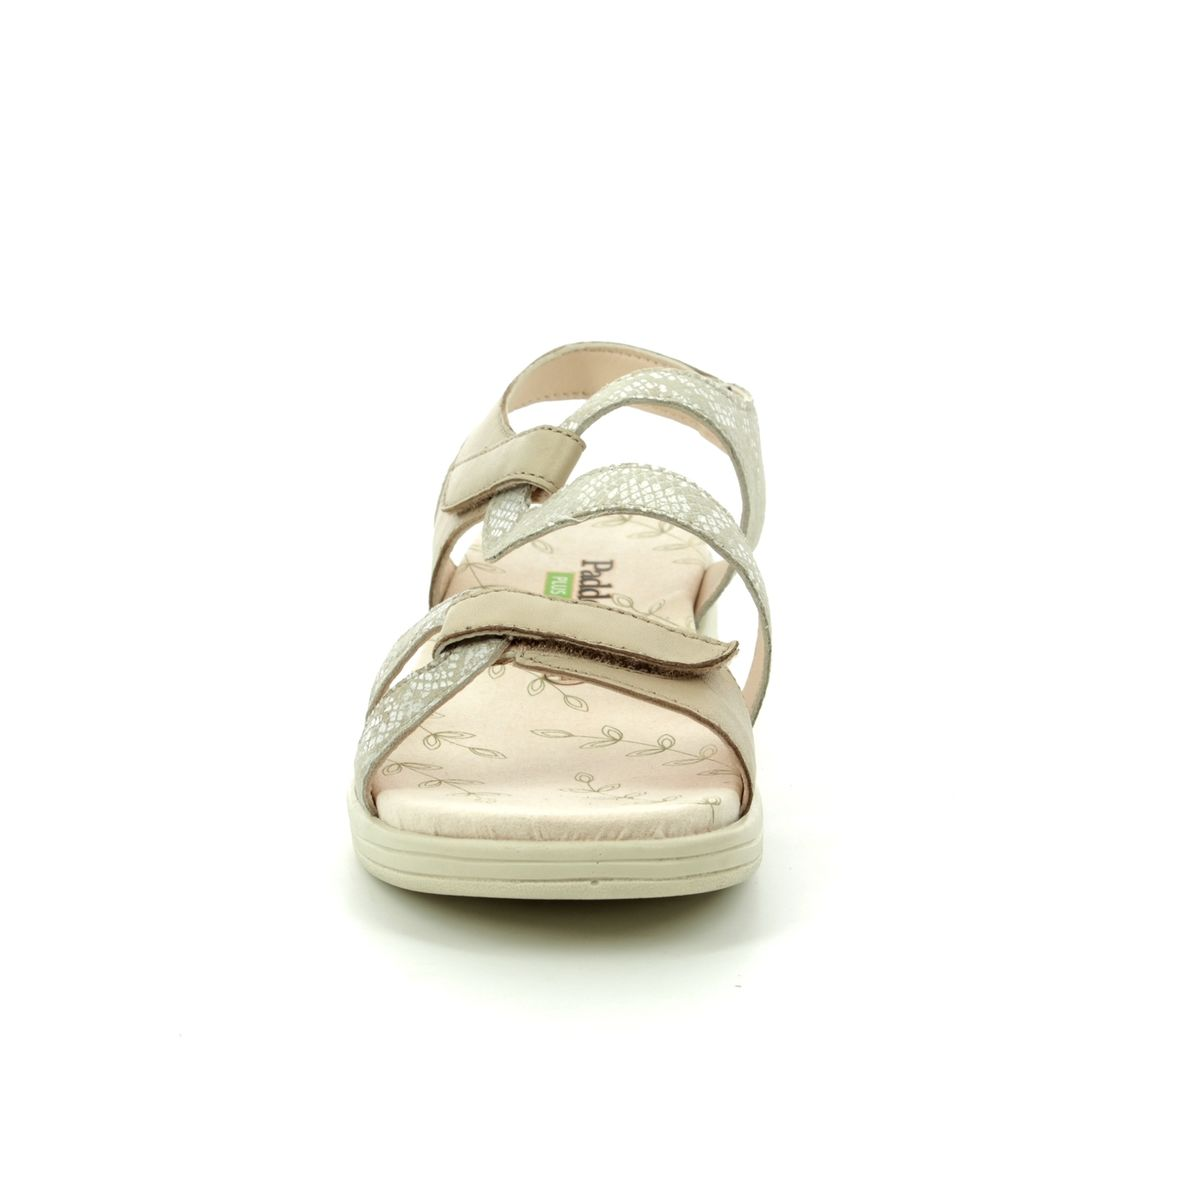 SALE - Padders Sunseek Sandal - Silver/White - Various Sizes